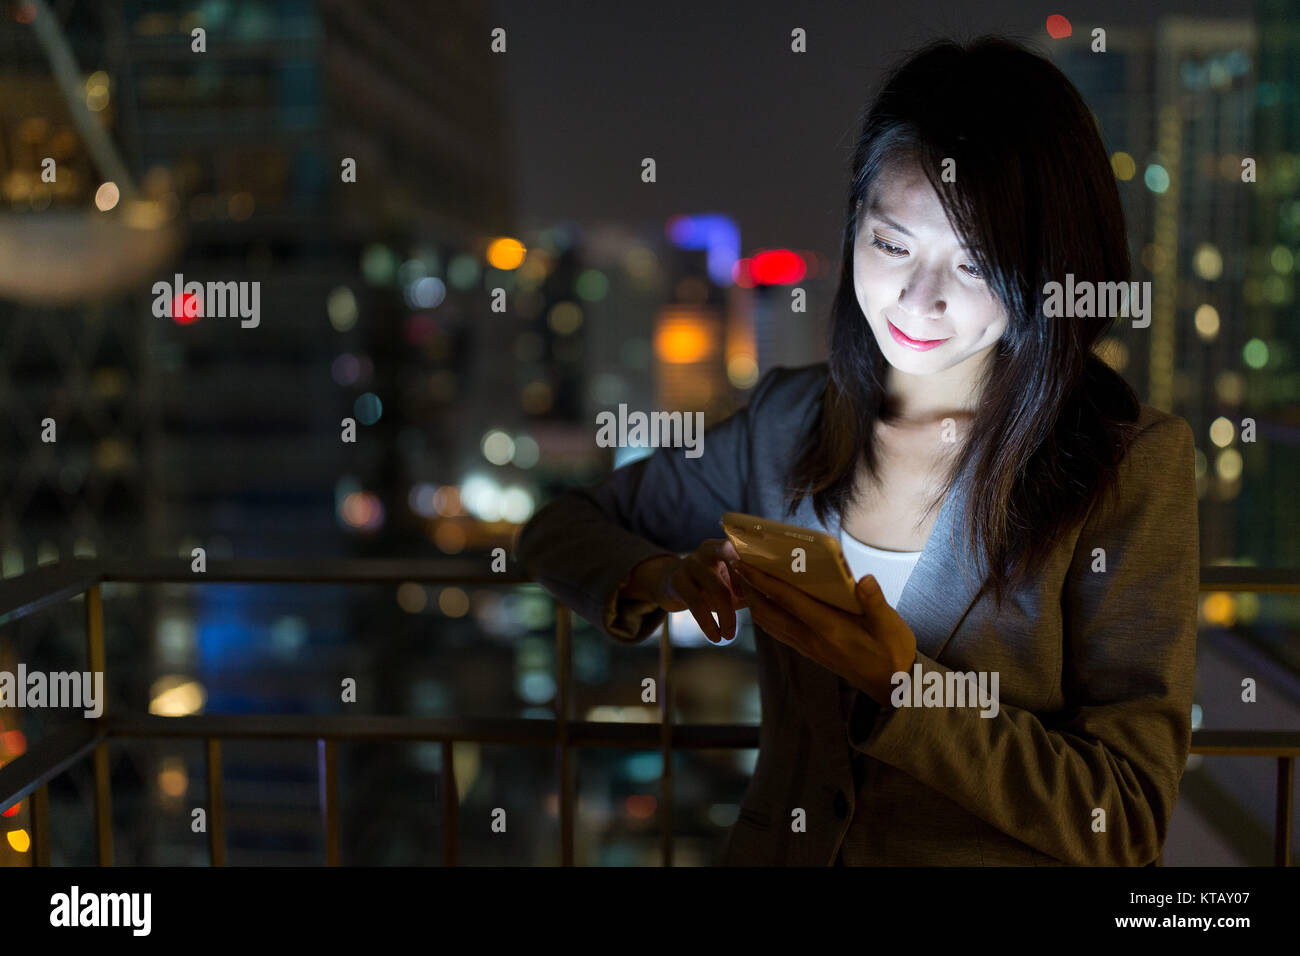 Businesswoman using mobile phone at night - Stock Image